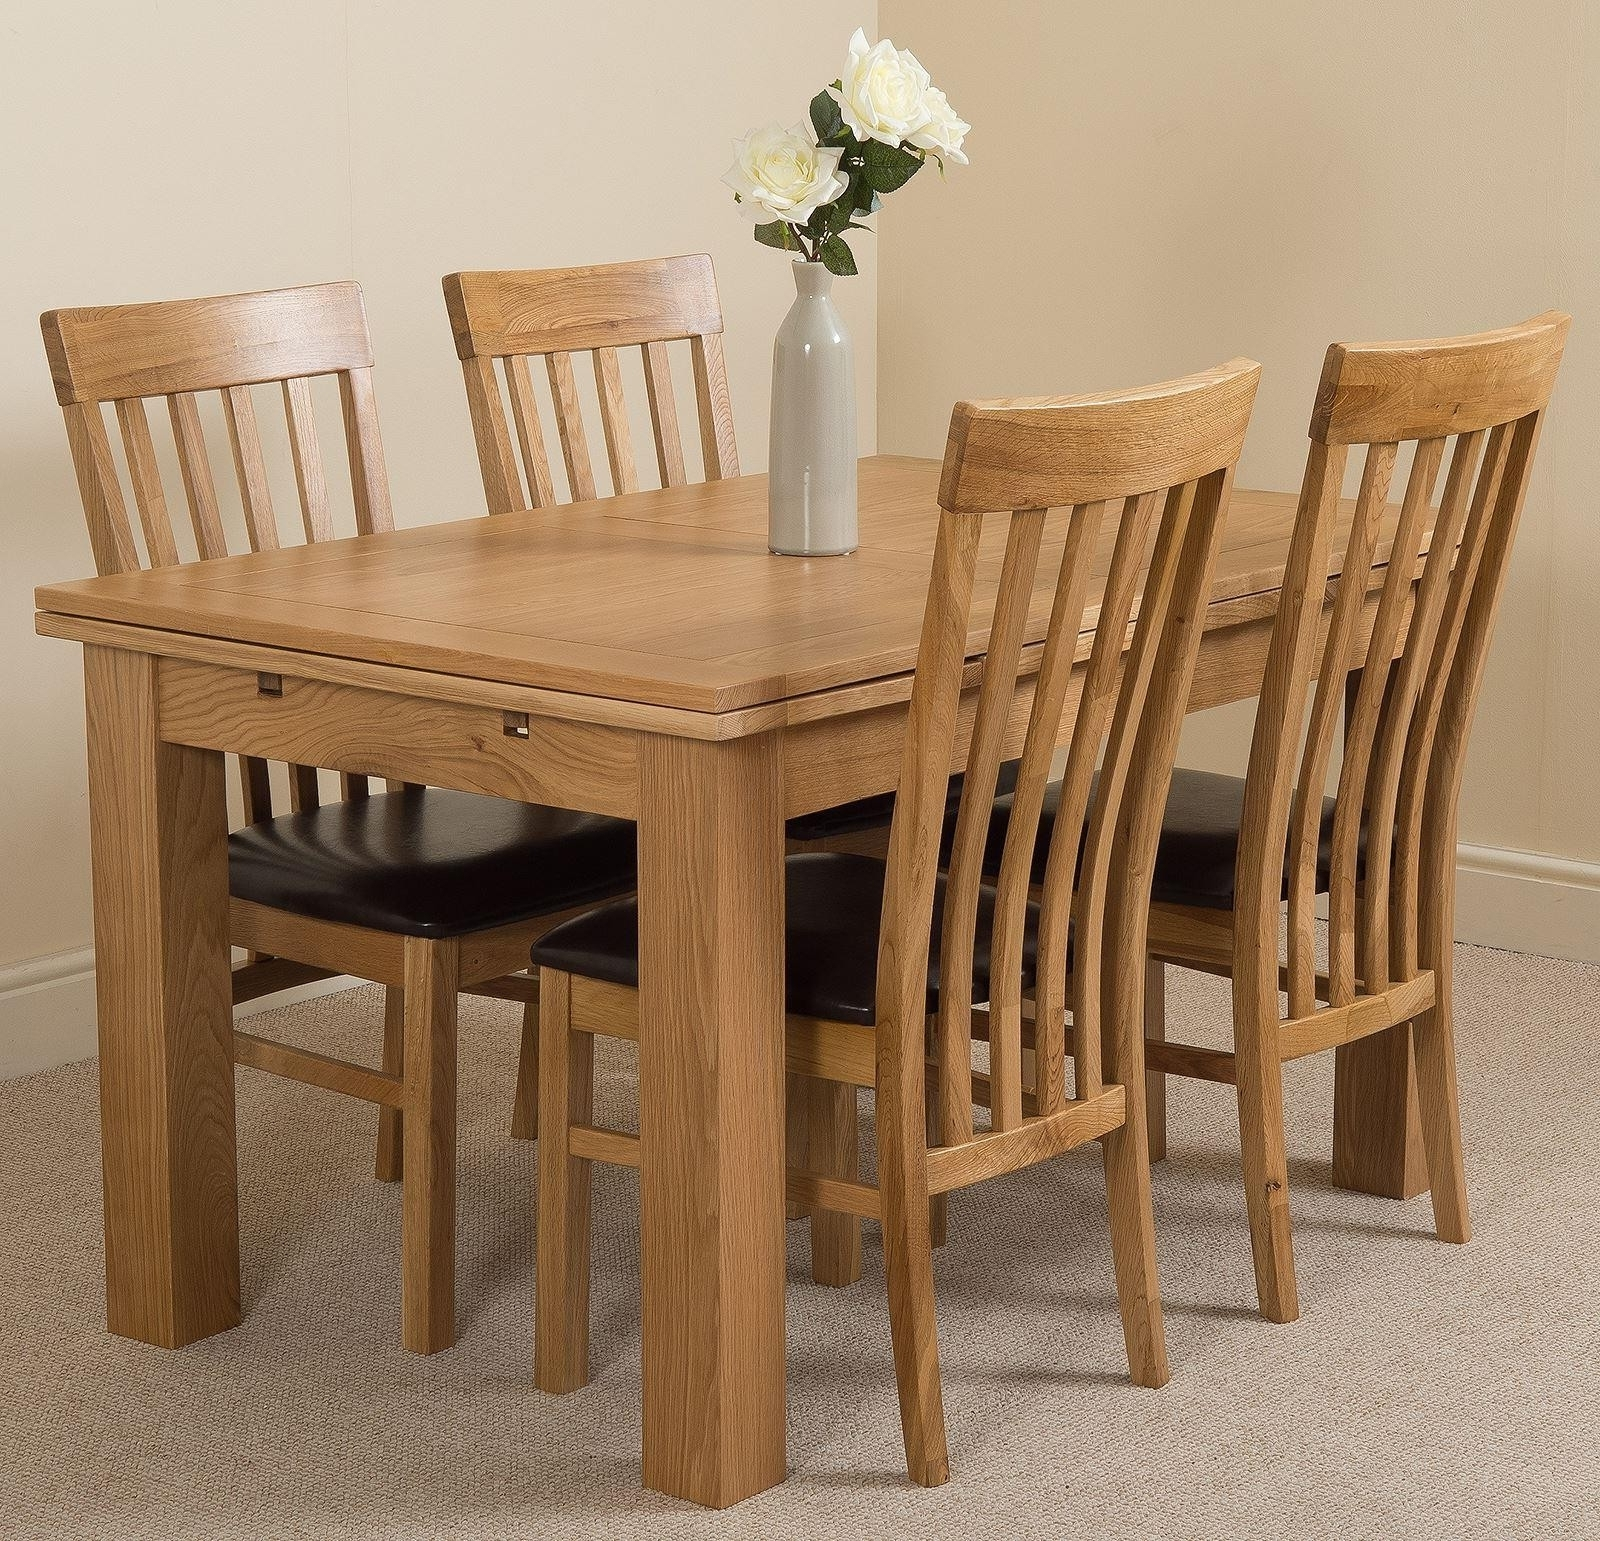 Extending Oak Dining Tables And Chairs With Regard To Popular Richmond Oak Small Dining Set 4 Harvard Chairs (View 10 of 25)